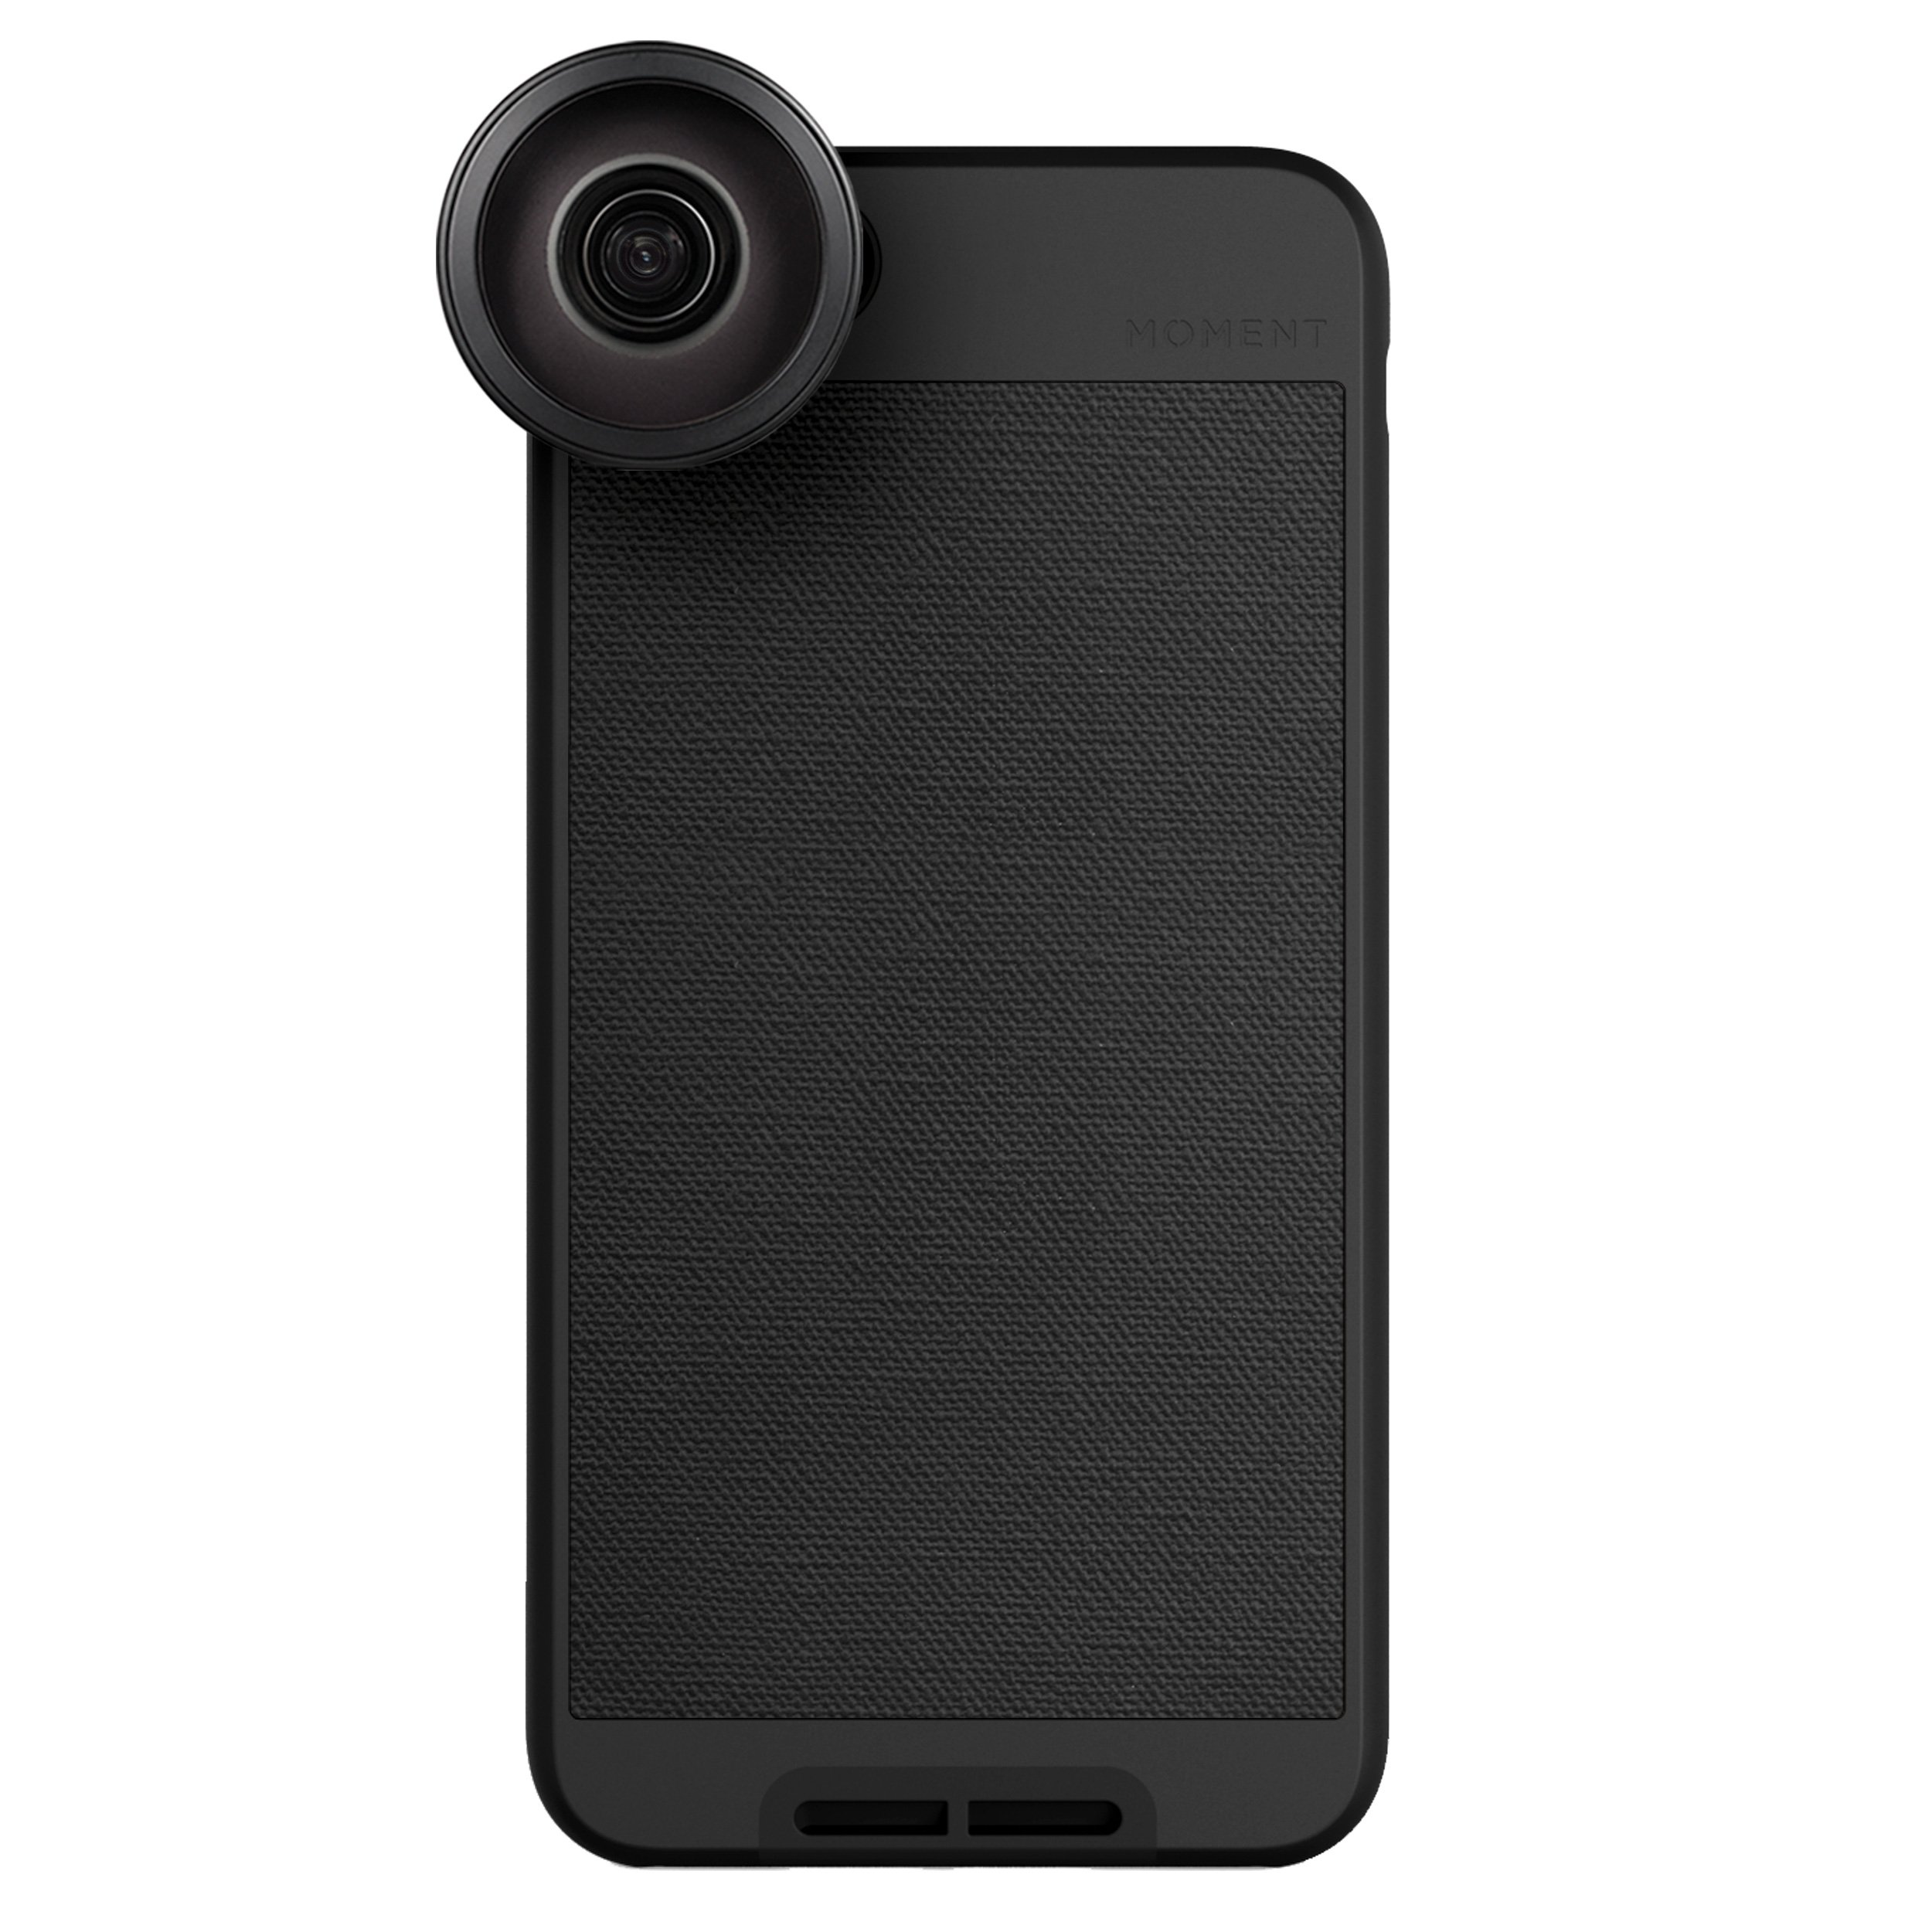 iPhone 8 Plus / iPhone 7 Plus Case with Fisheye Lens Kit || Moment Black Canvas Photo Case plus Superfish Lens || Best iphone fisheye attachment lens with thin protective case.